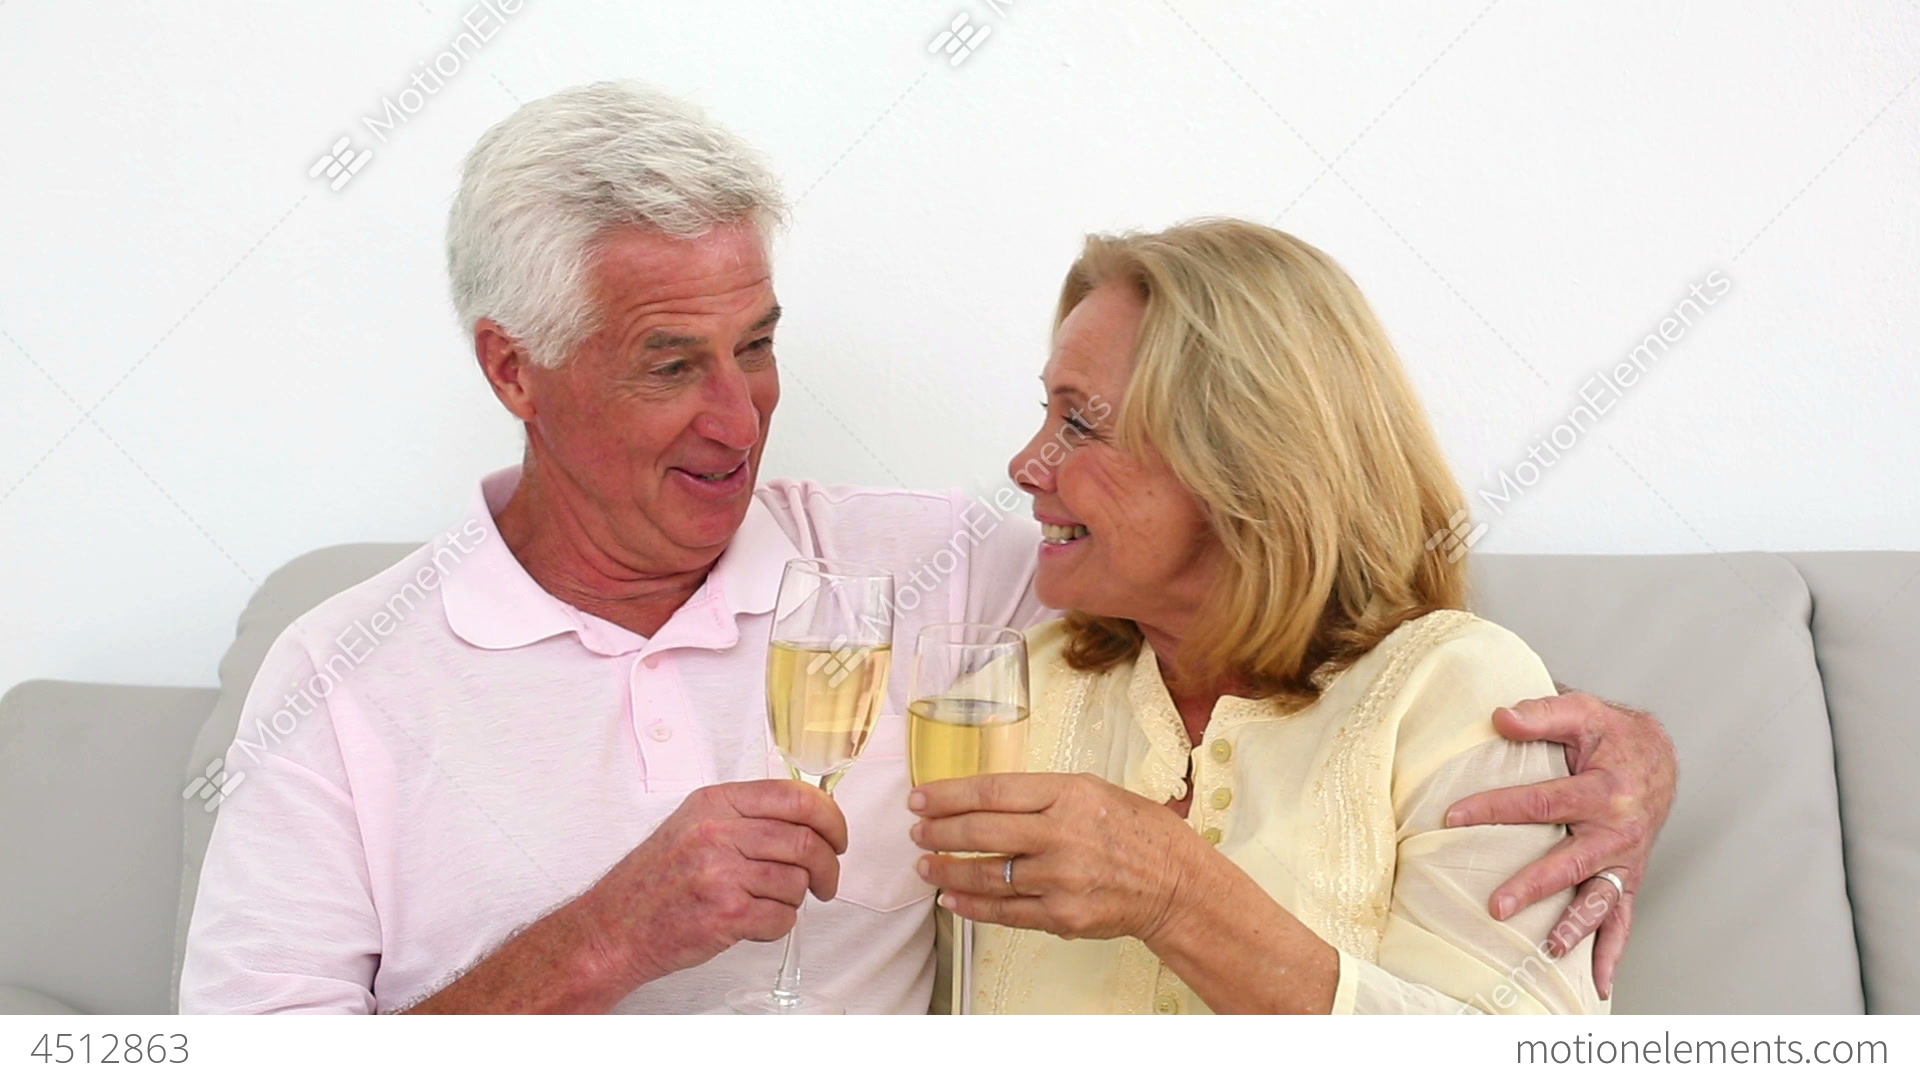 Couple drinking on couch